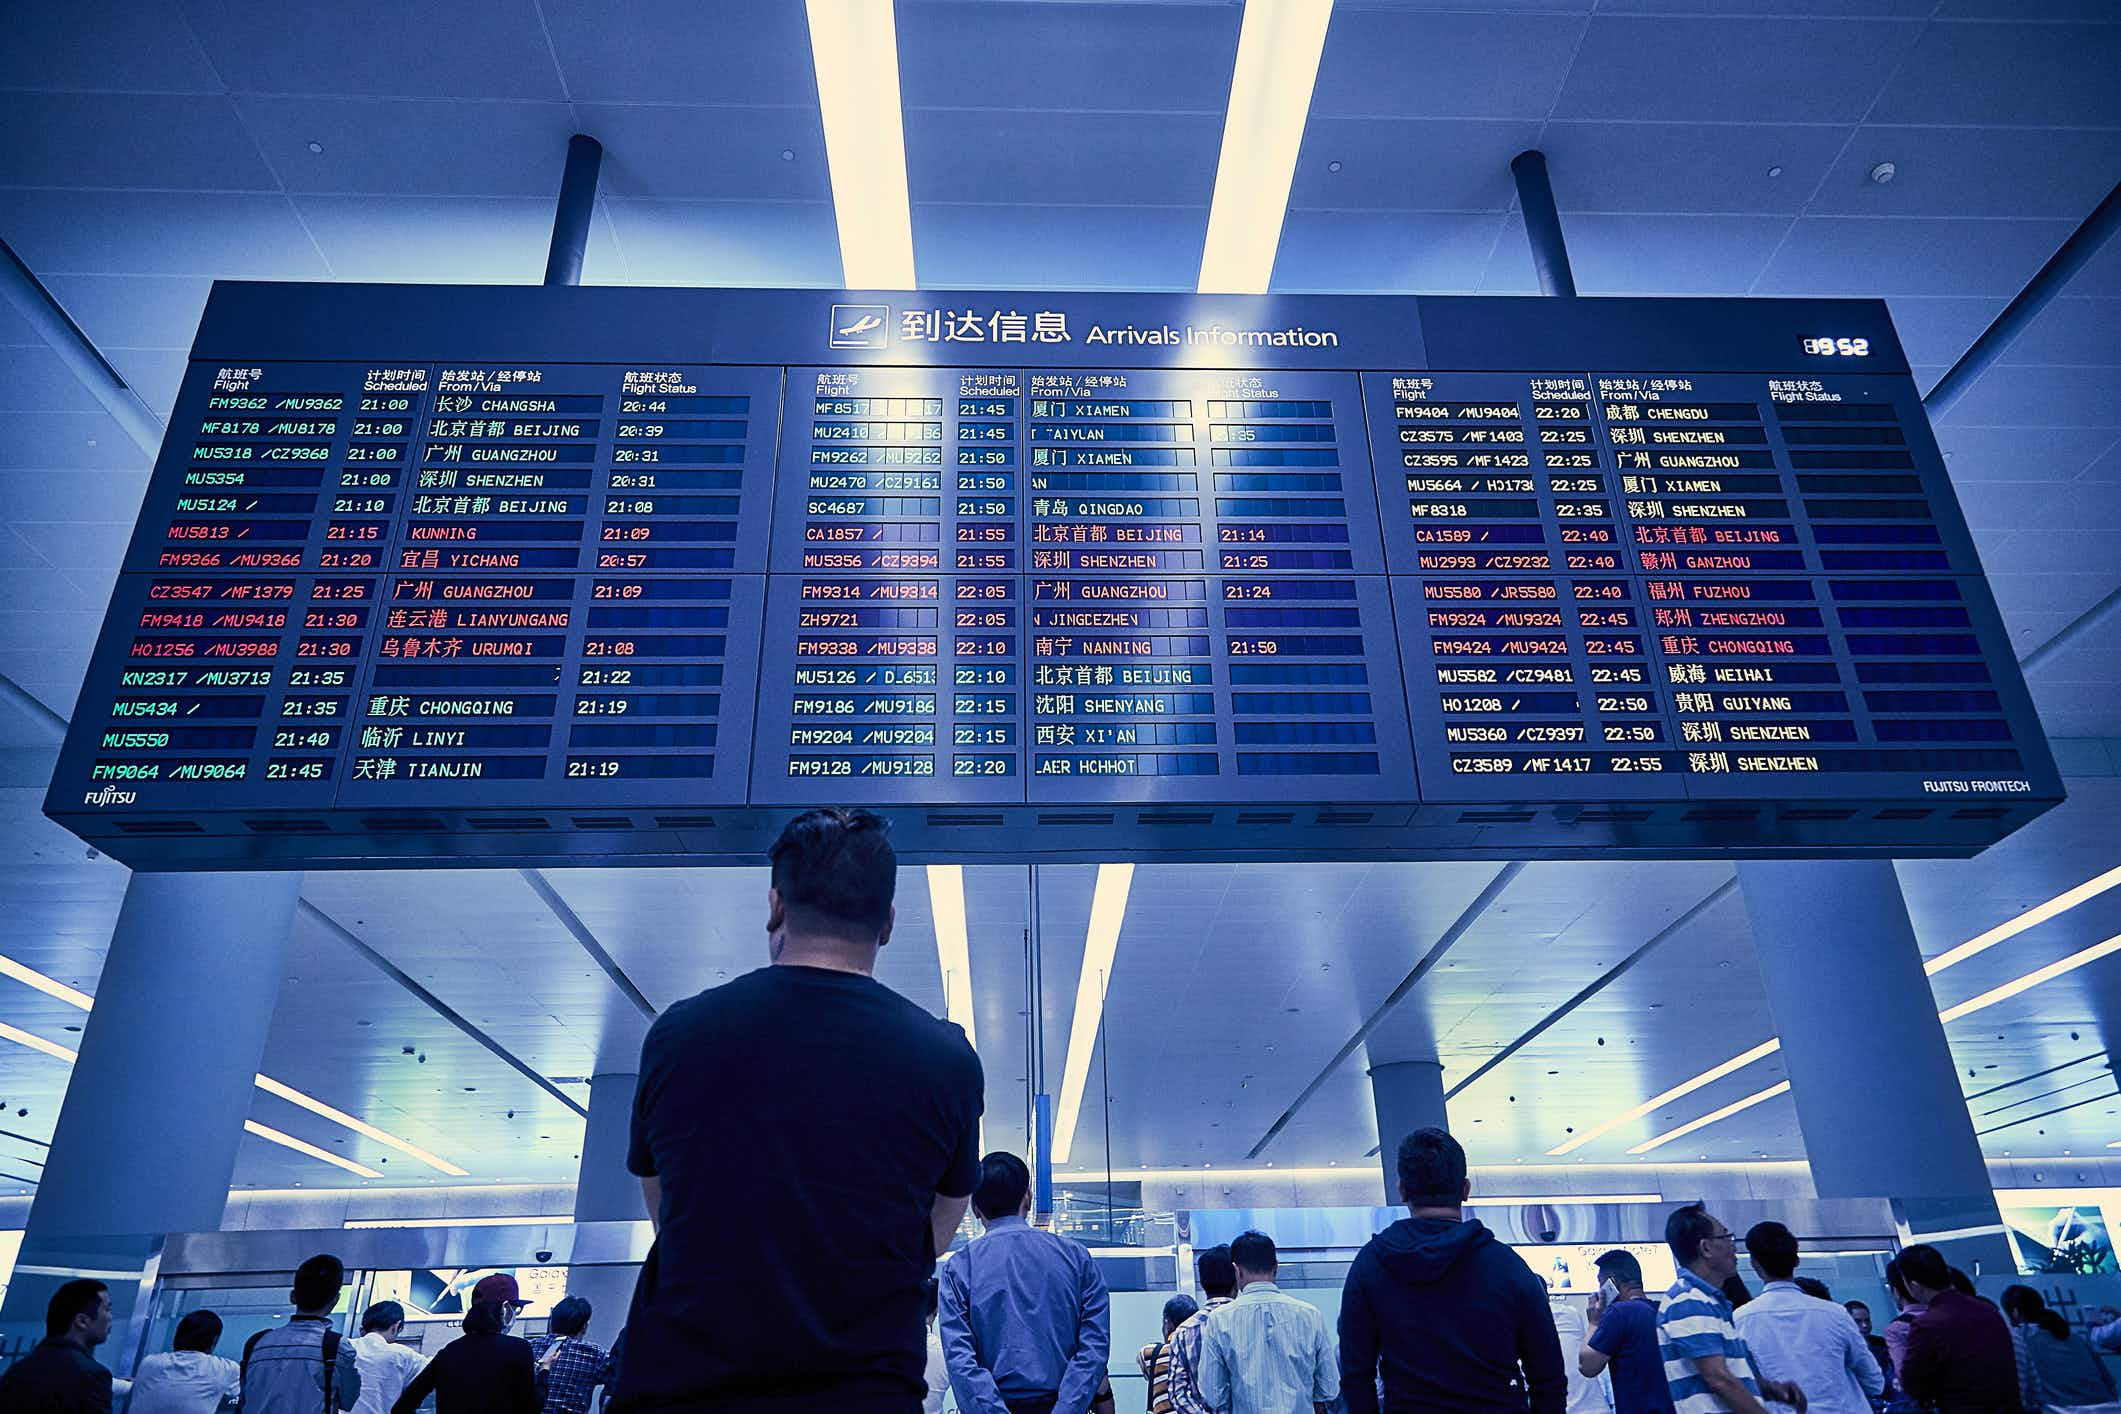 Is it better to book long haul connections with the same airline when planning a trip?